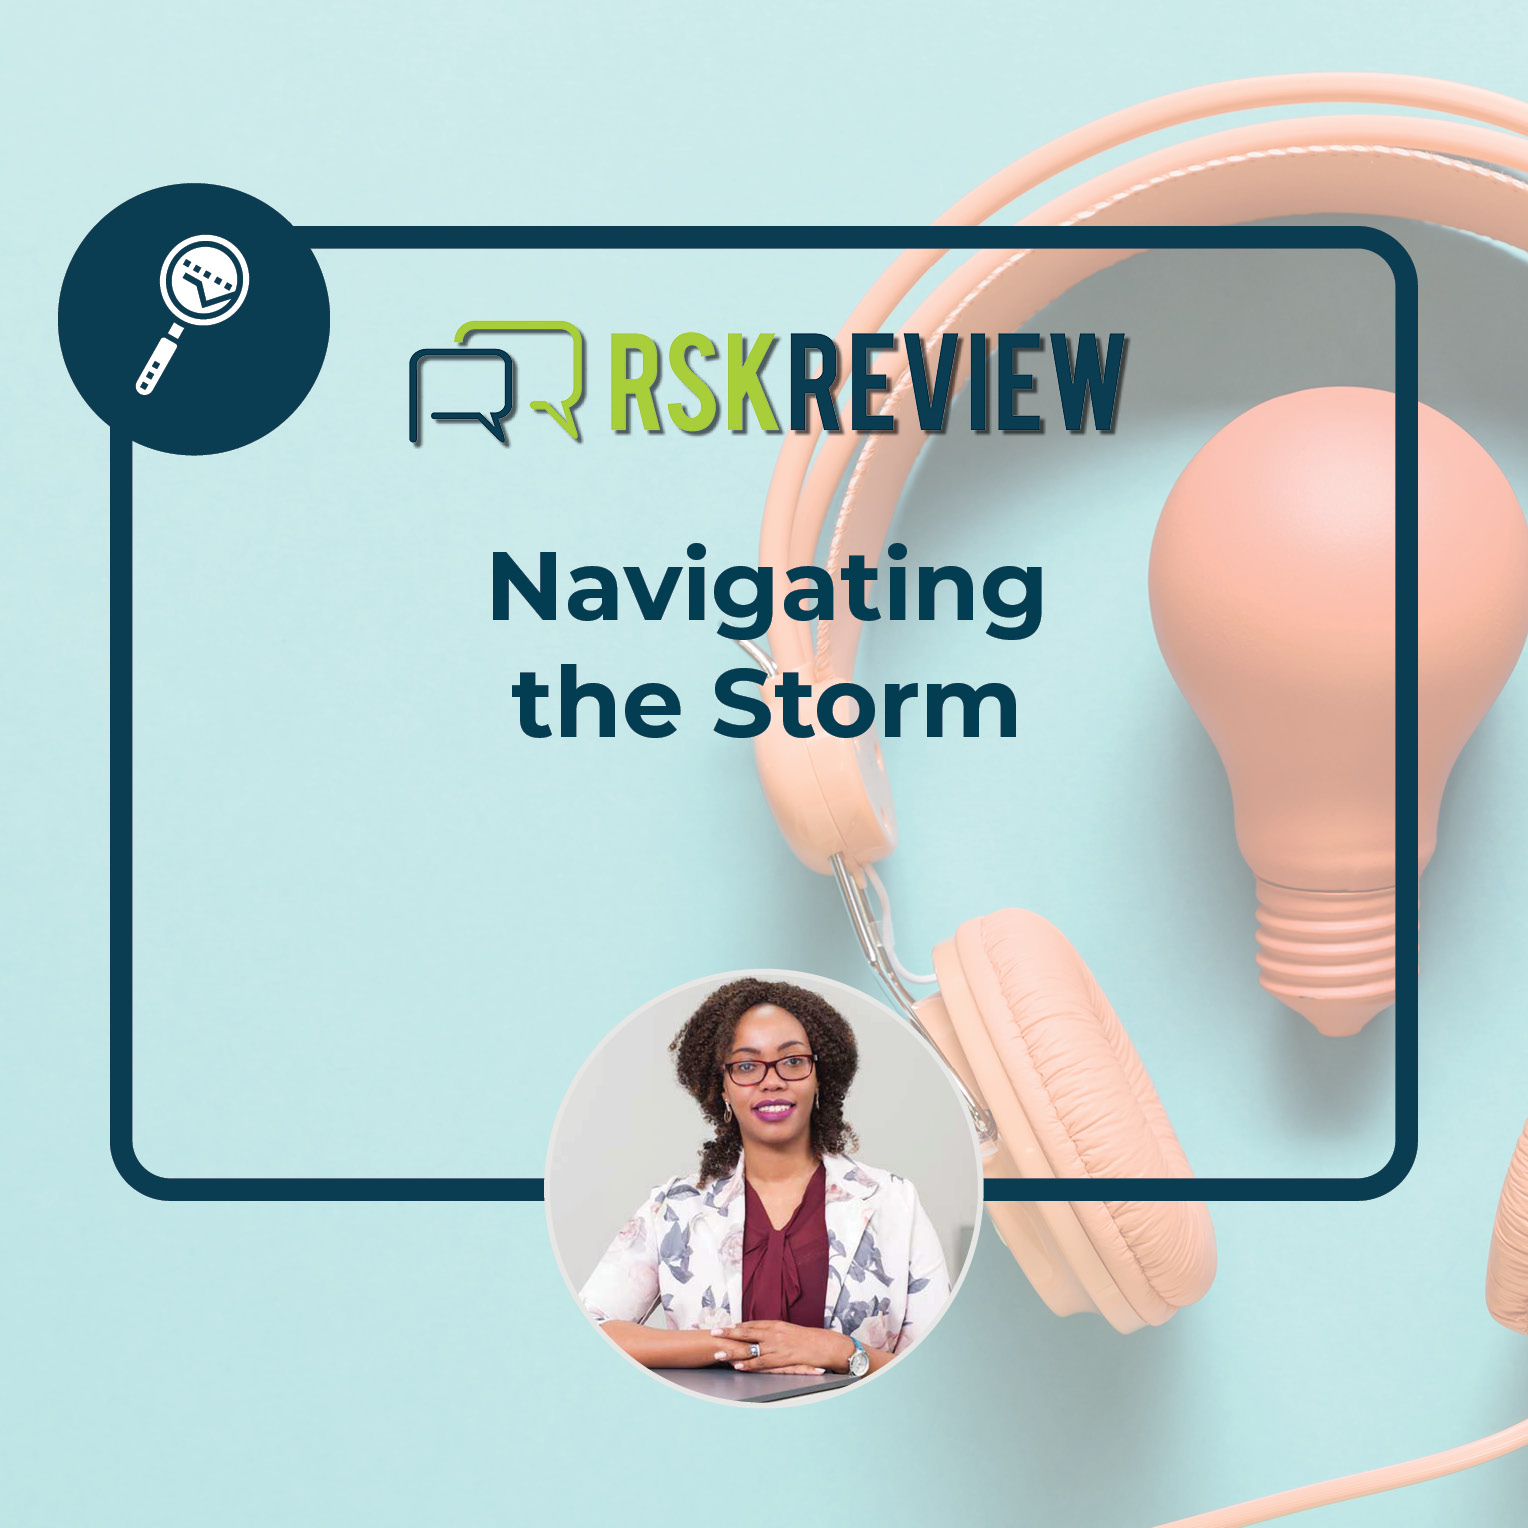 navigating the storm title image